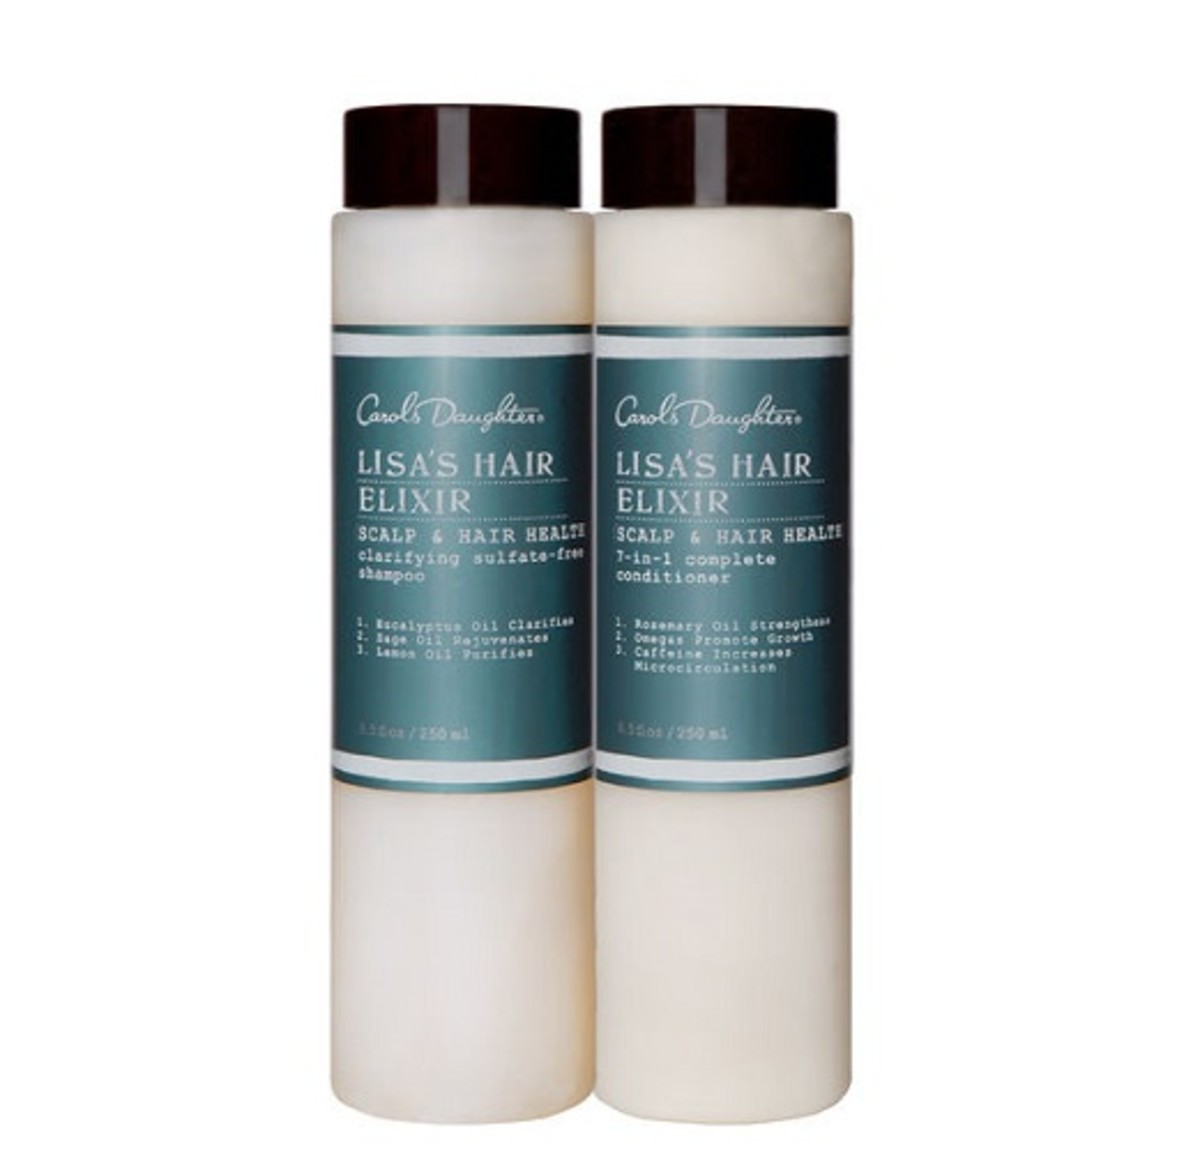 Carol's Daughter Lisa's Hair Elixir Clarifying Sulfate-Free Shampoo and Condtioner